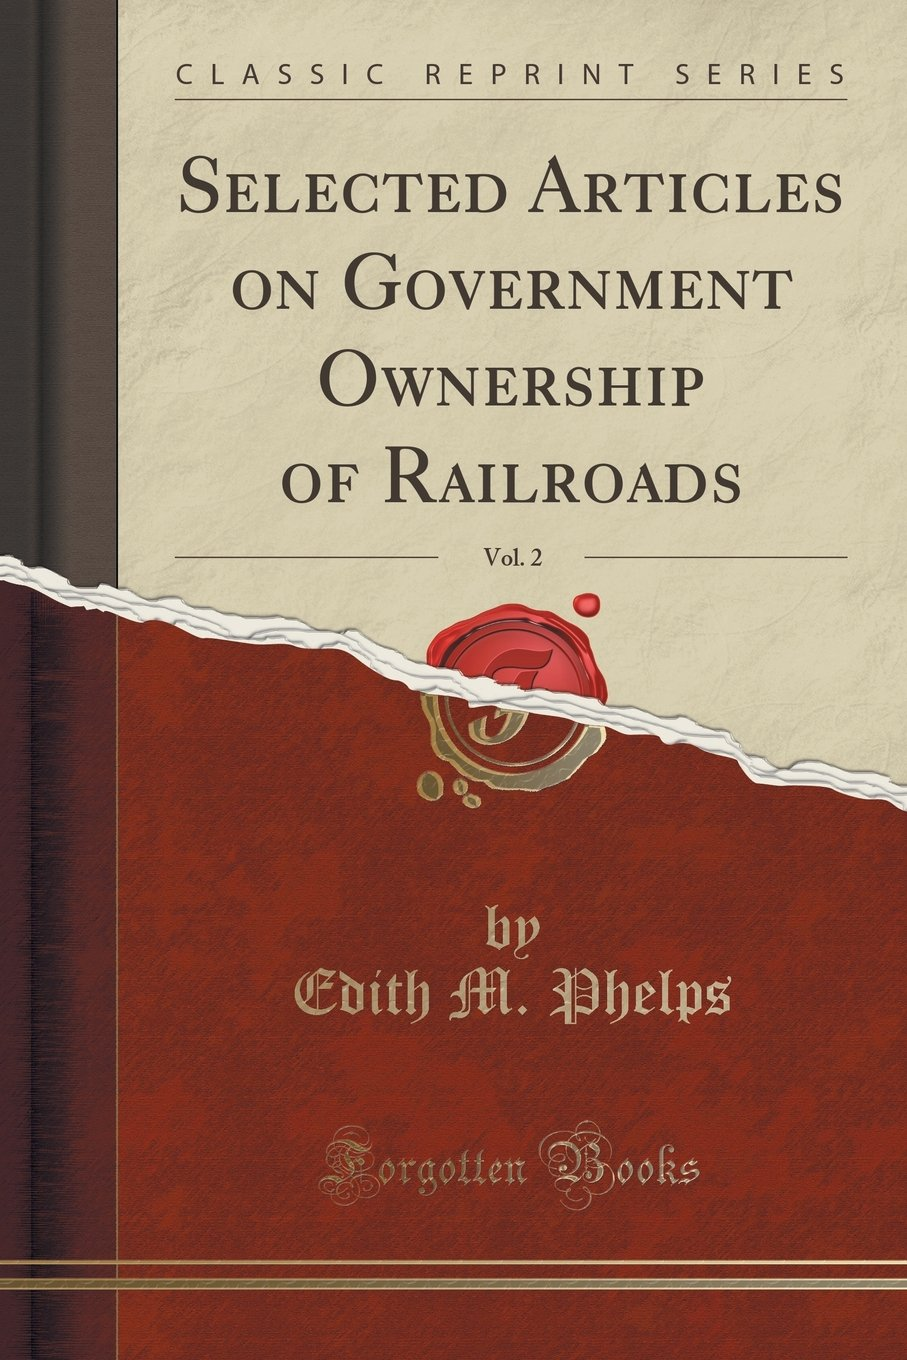 Selected Articles on Government Ownership of Railroads, Vol. 2 (Classic Reprint)